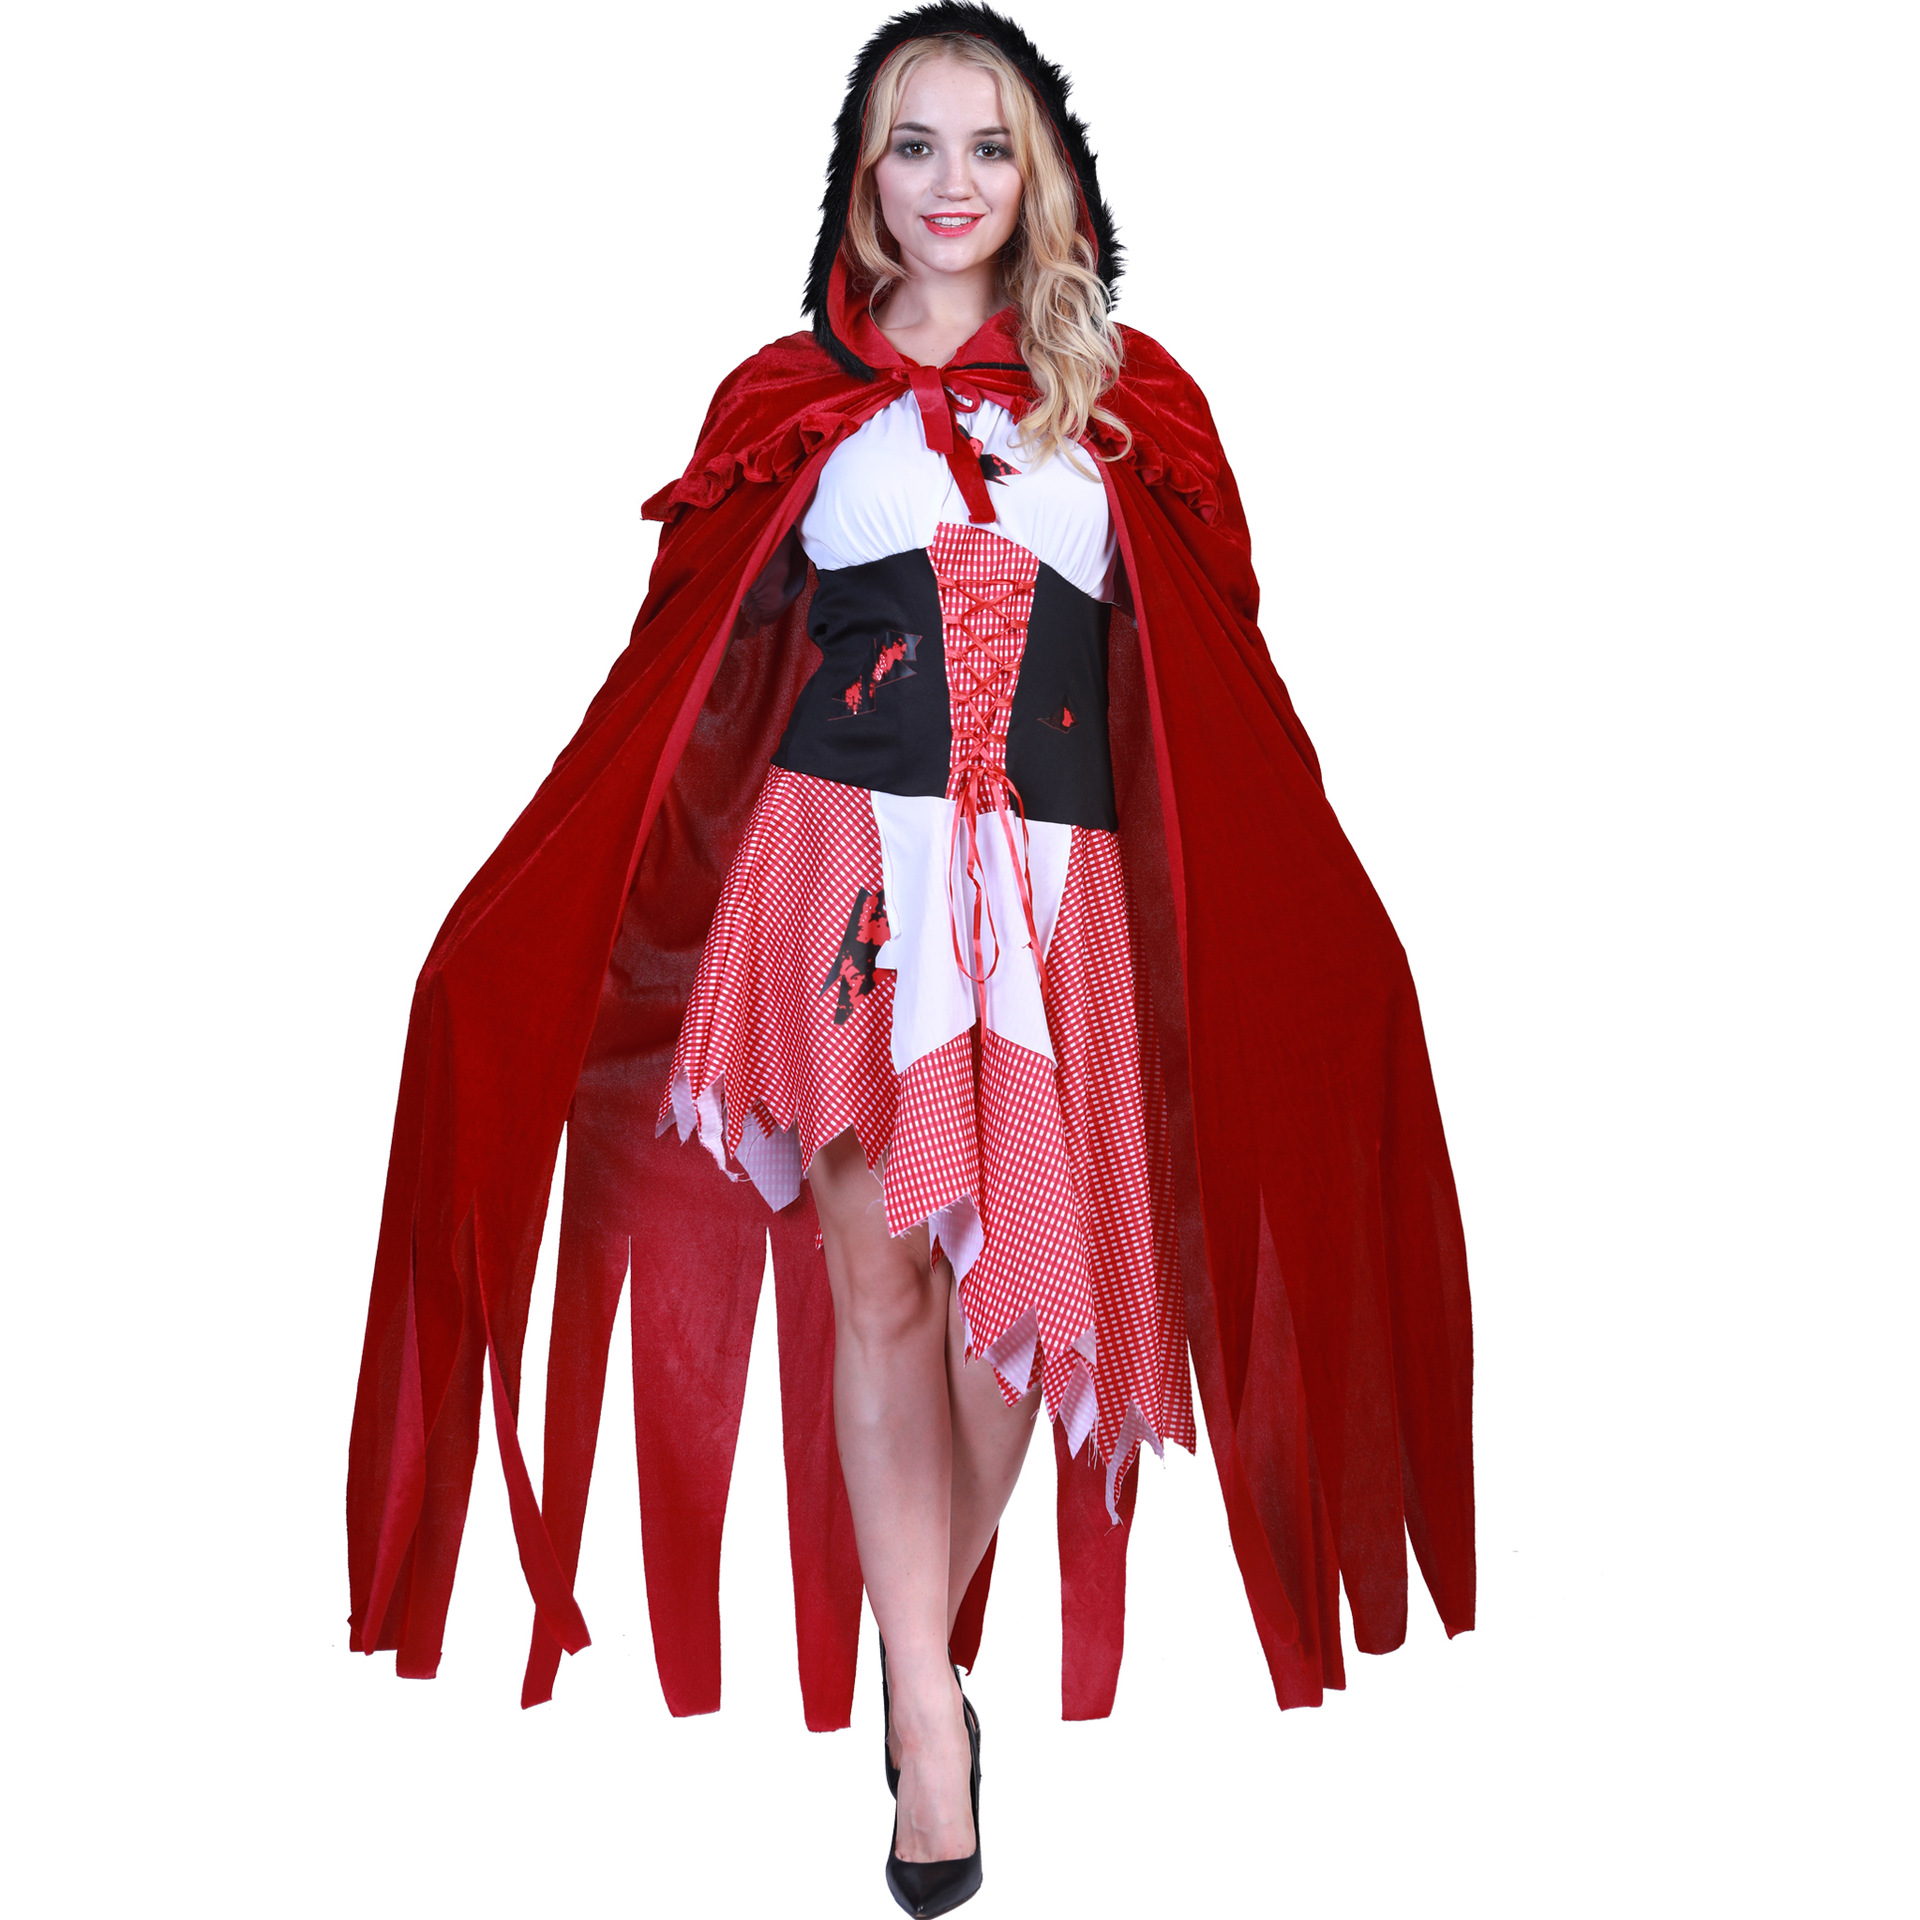 Adult Women Halloween Costume Little Red Riding Hooded Robe Lady Embroidery Dress Party Cloak Outfit for Girls